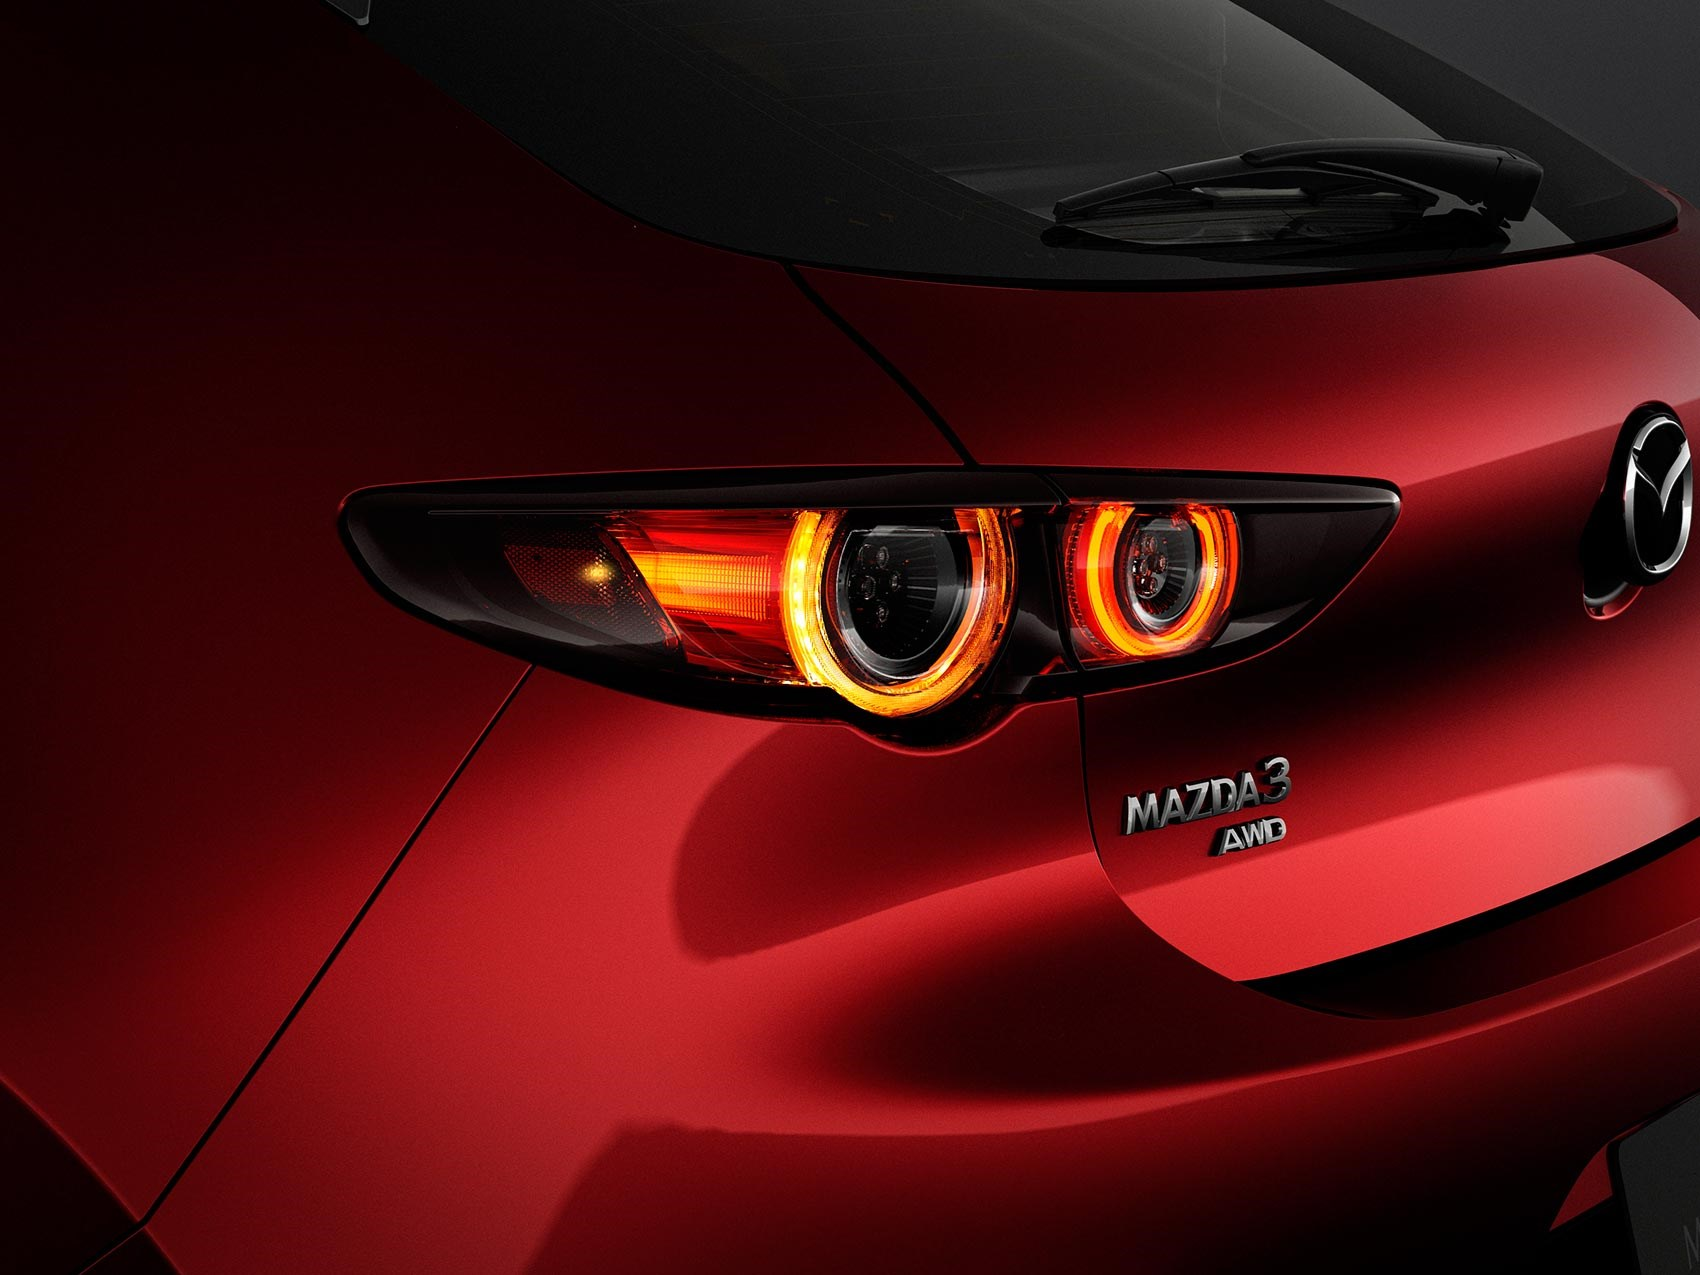 Rear Lights On Mazda 3 Have Shades Of Mx 5 No